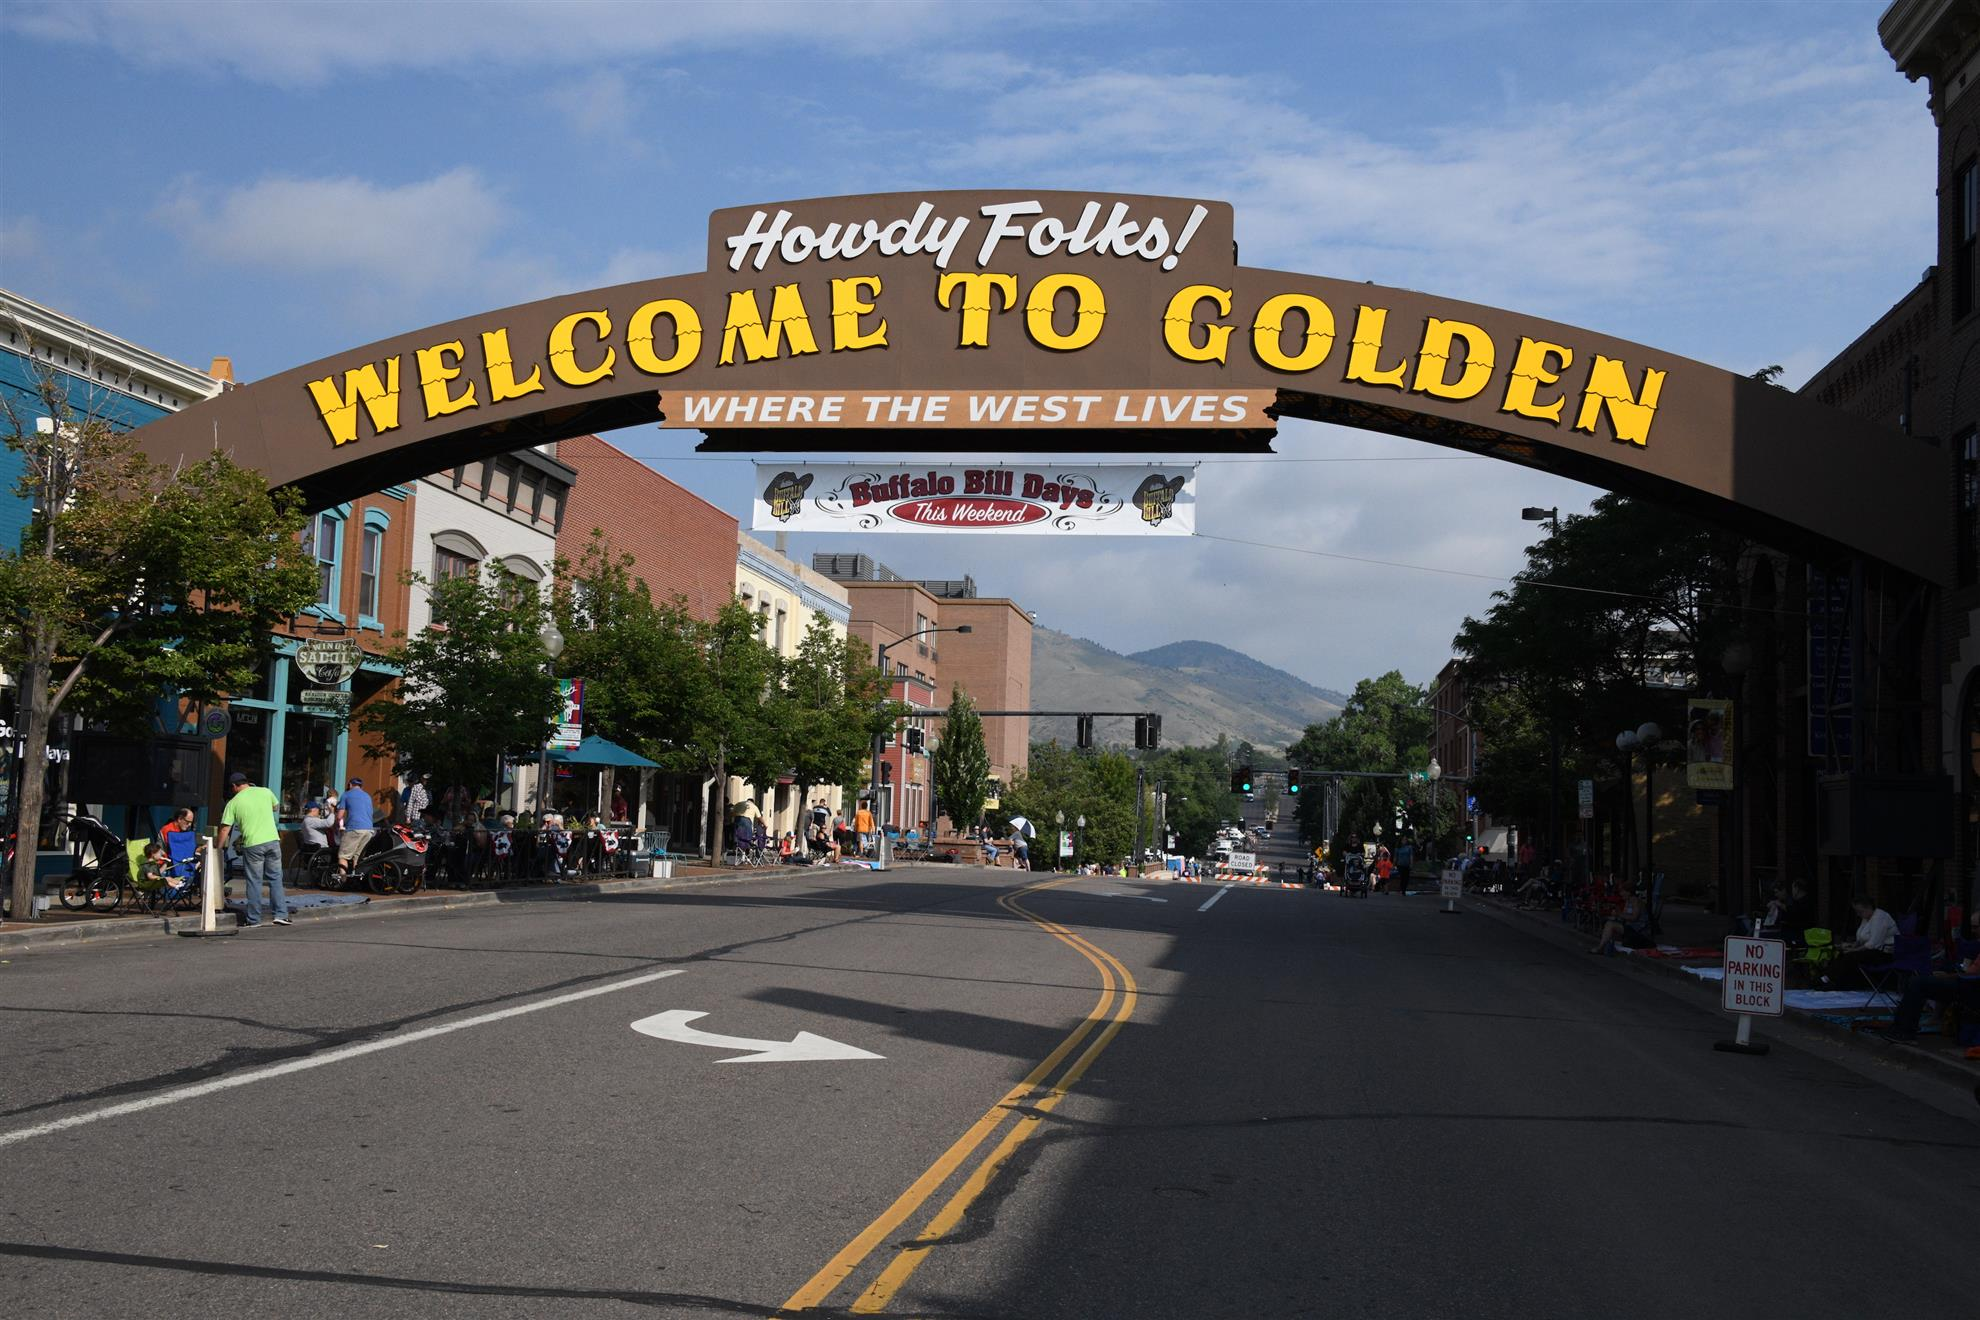 Colorado Christmas Events 2020 Christmas Events In Colorado 2020 Tax   Vrcnup.merrychristmasbest.site